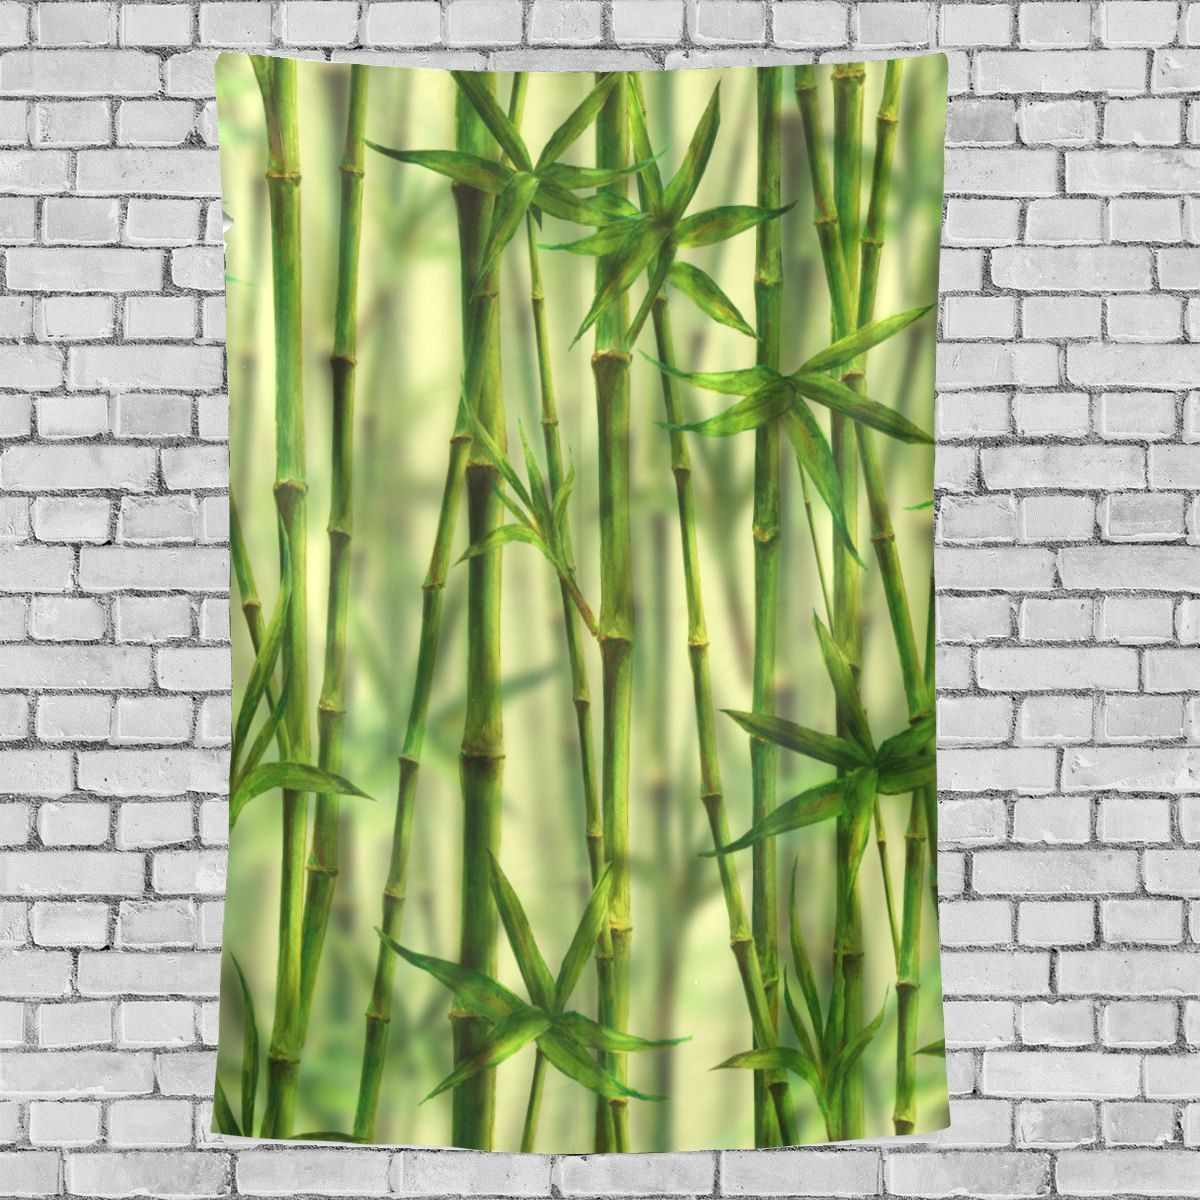 Edgy Art Wall Decor Bamboo Forest Green Leaves Pattern